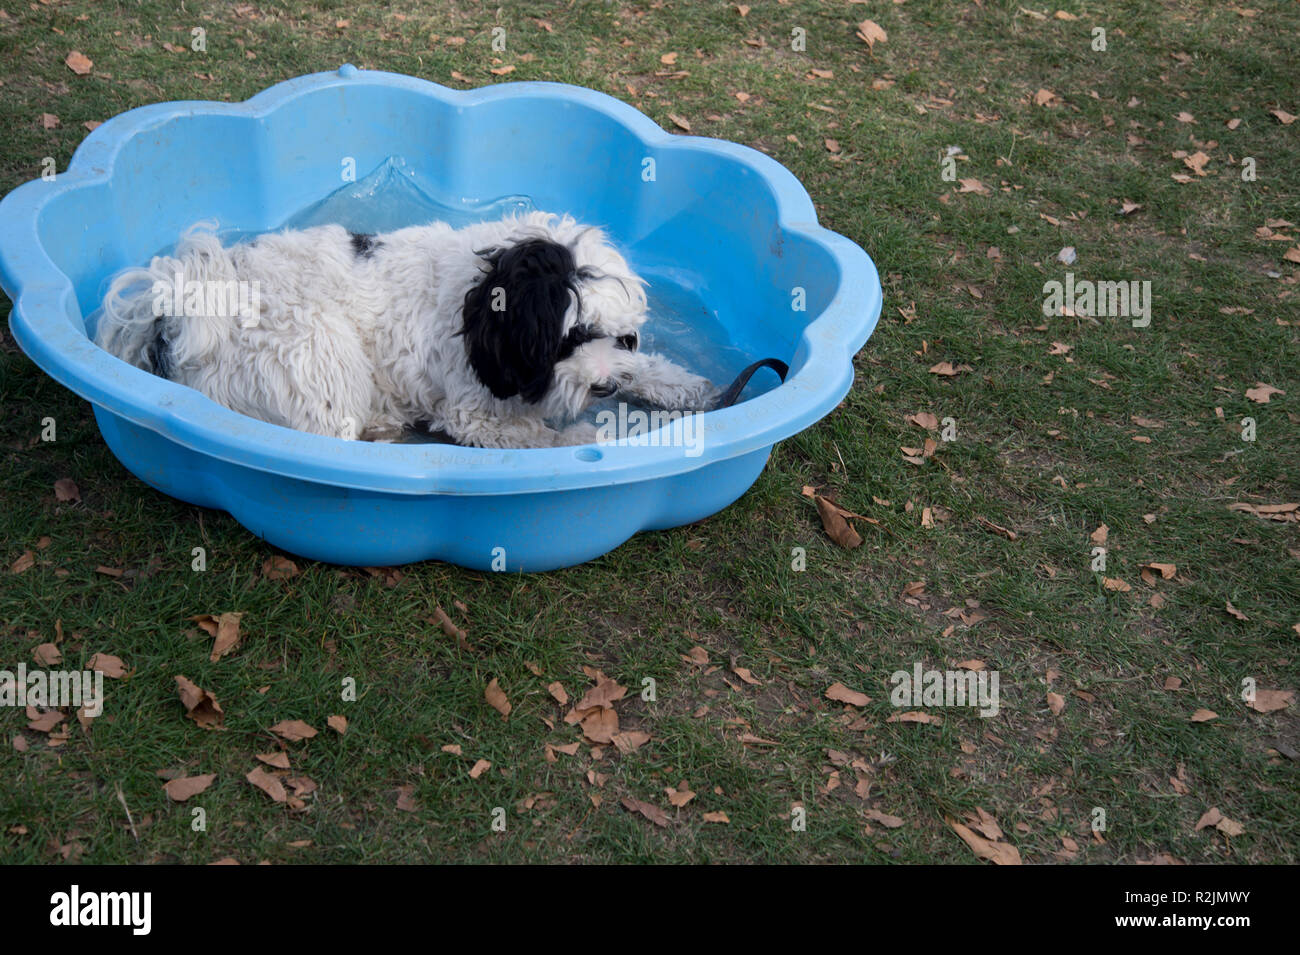 Hackney. London Fields. Dog show - dog having a rest in a paddling pool - Stock Image